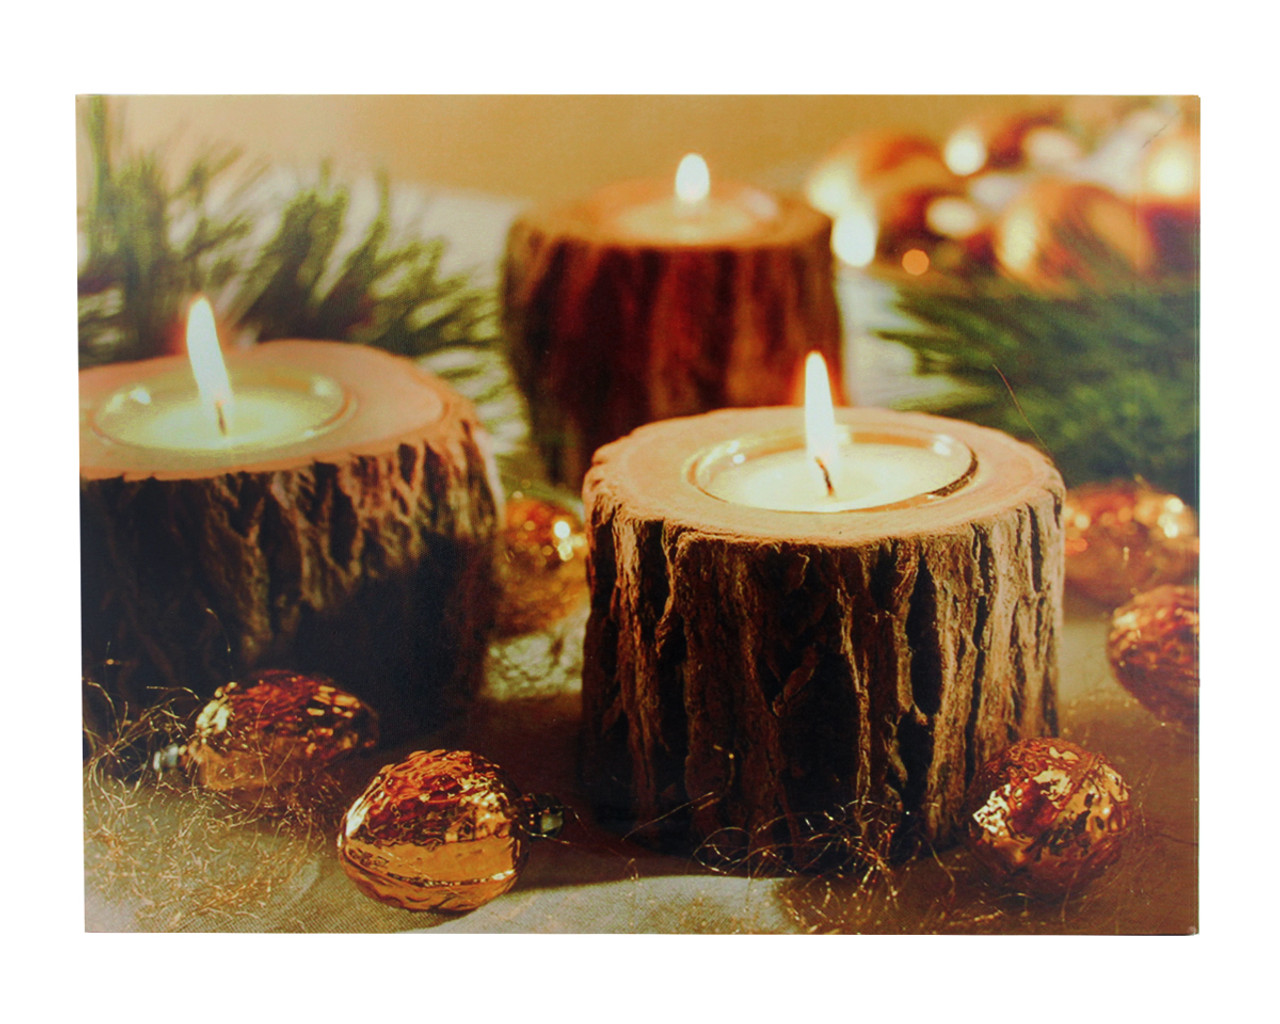 LED Lighted Flickering Rustic Lodge Woodland Candles Canvas Wall Art 11.75  x 15.75  -  sc 1 st  Christmas Central & LED Lighted Flickering Rustic Lodge Woodland Candles Canvas Wall Art ...